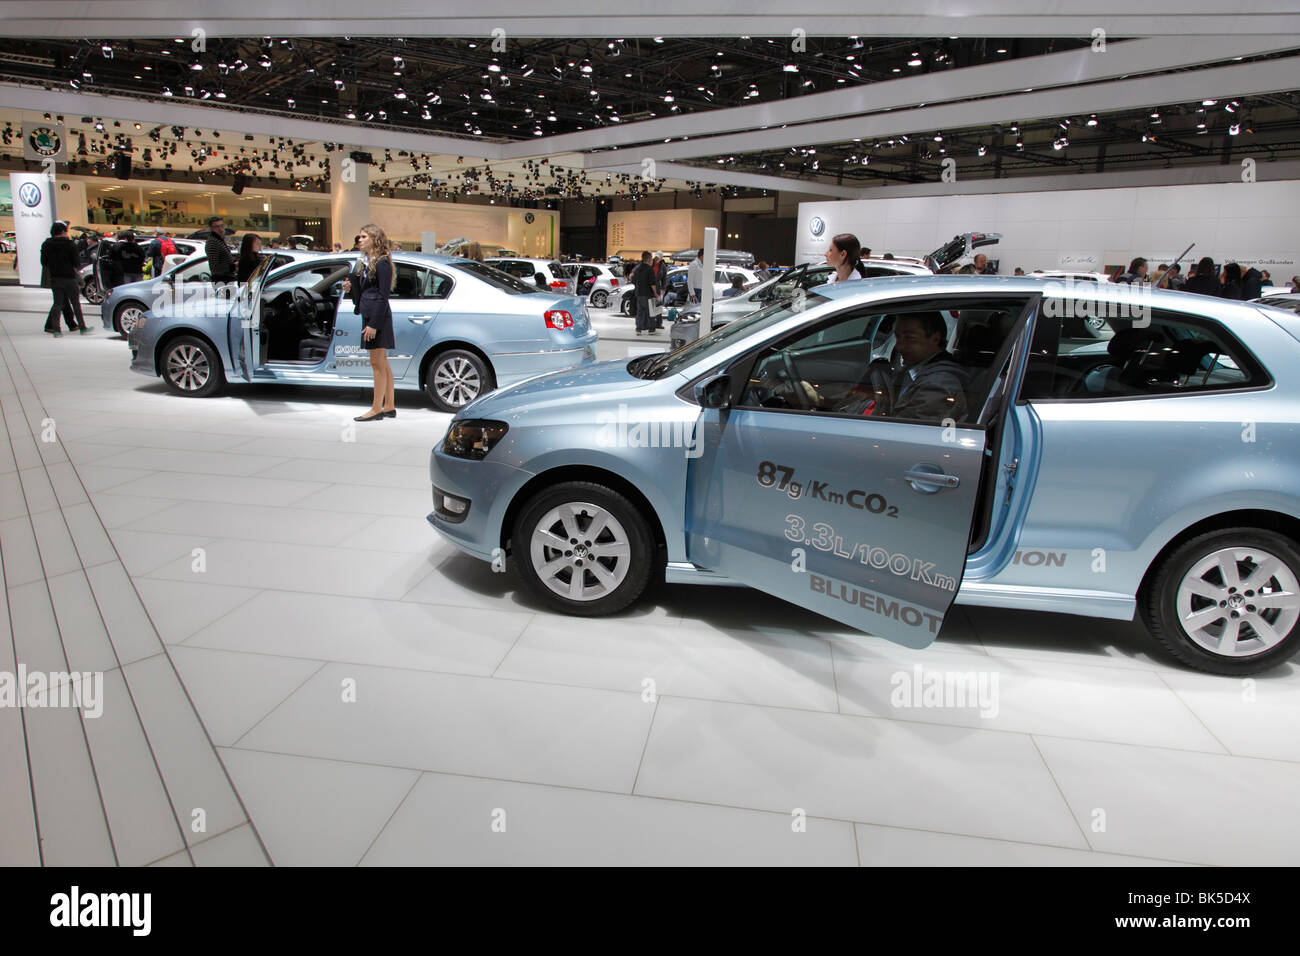 VW at the Auto Mobil International (AMI) - Motor Show 2010 in Leipzig, Germany - Stock Image